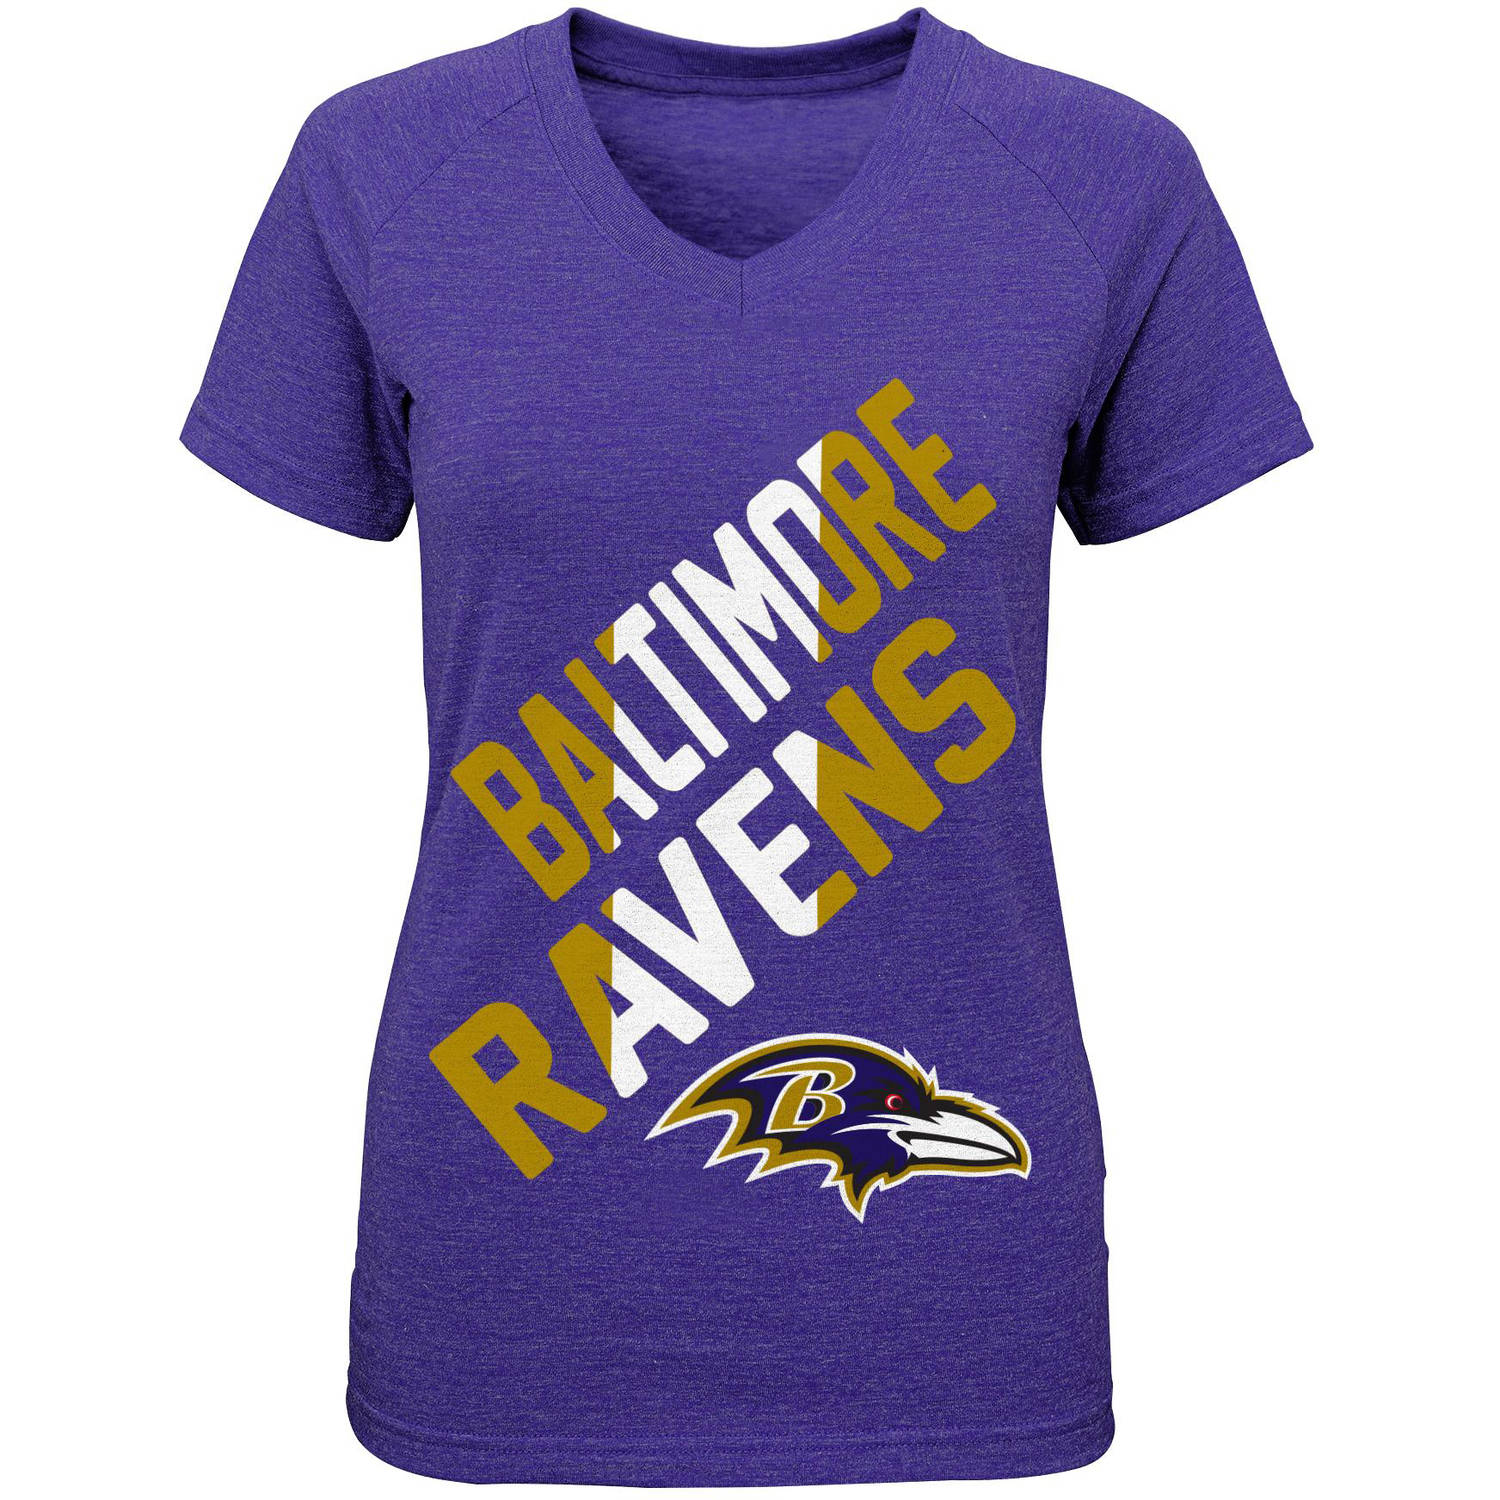 NFL Girls Ravens Short Sleeve Triblend Tee With Team Screenprint